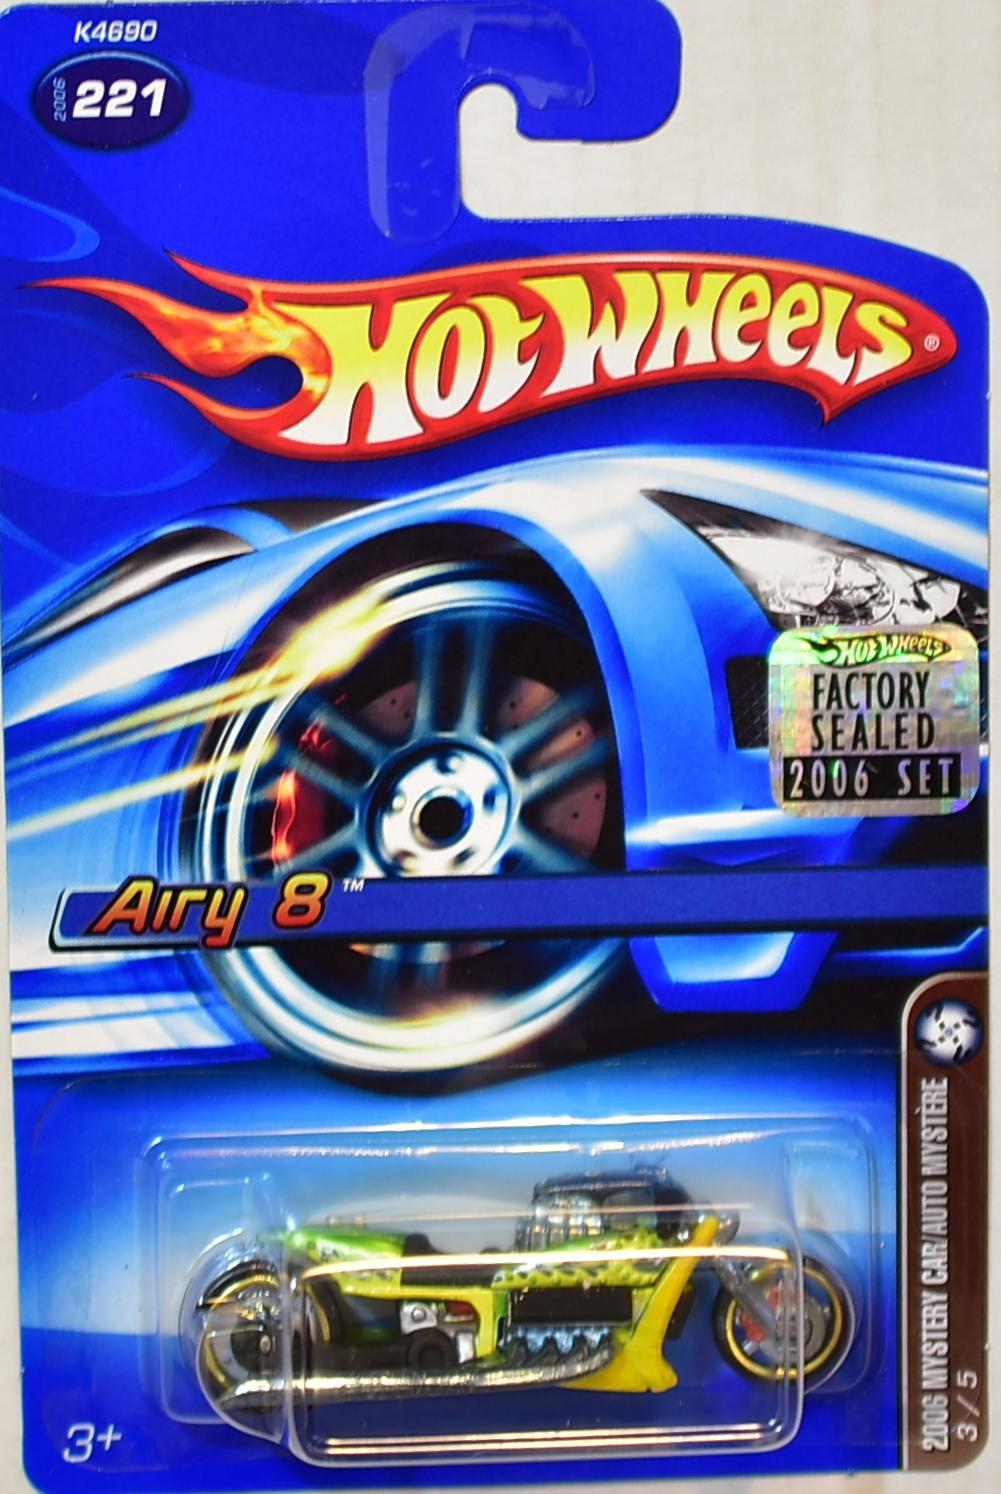 HOT WHEELS 2006 MYSTERY CAR/AUTO MYSTERE AIRY 8 #221 FACTORY SEALED